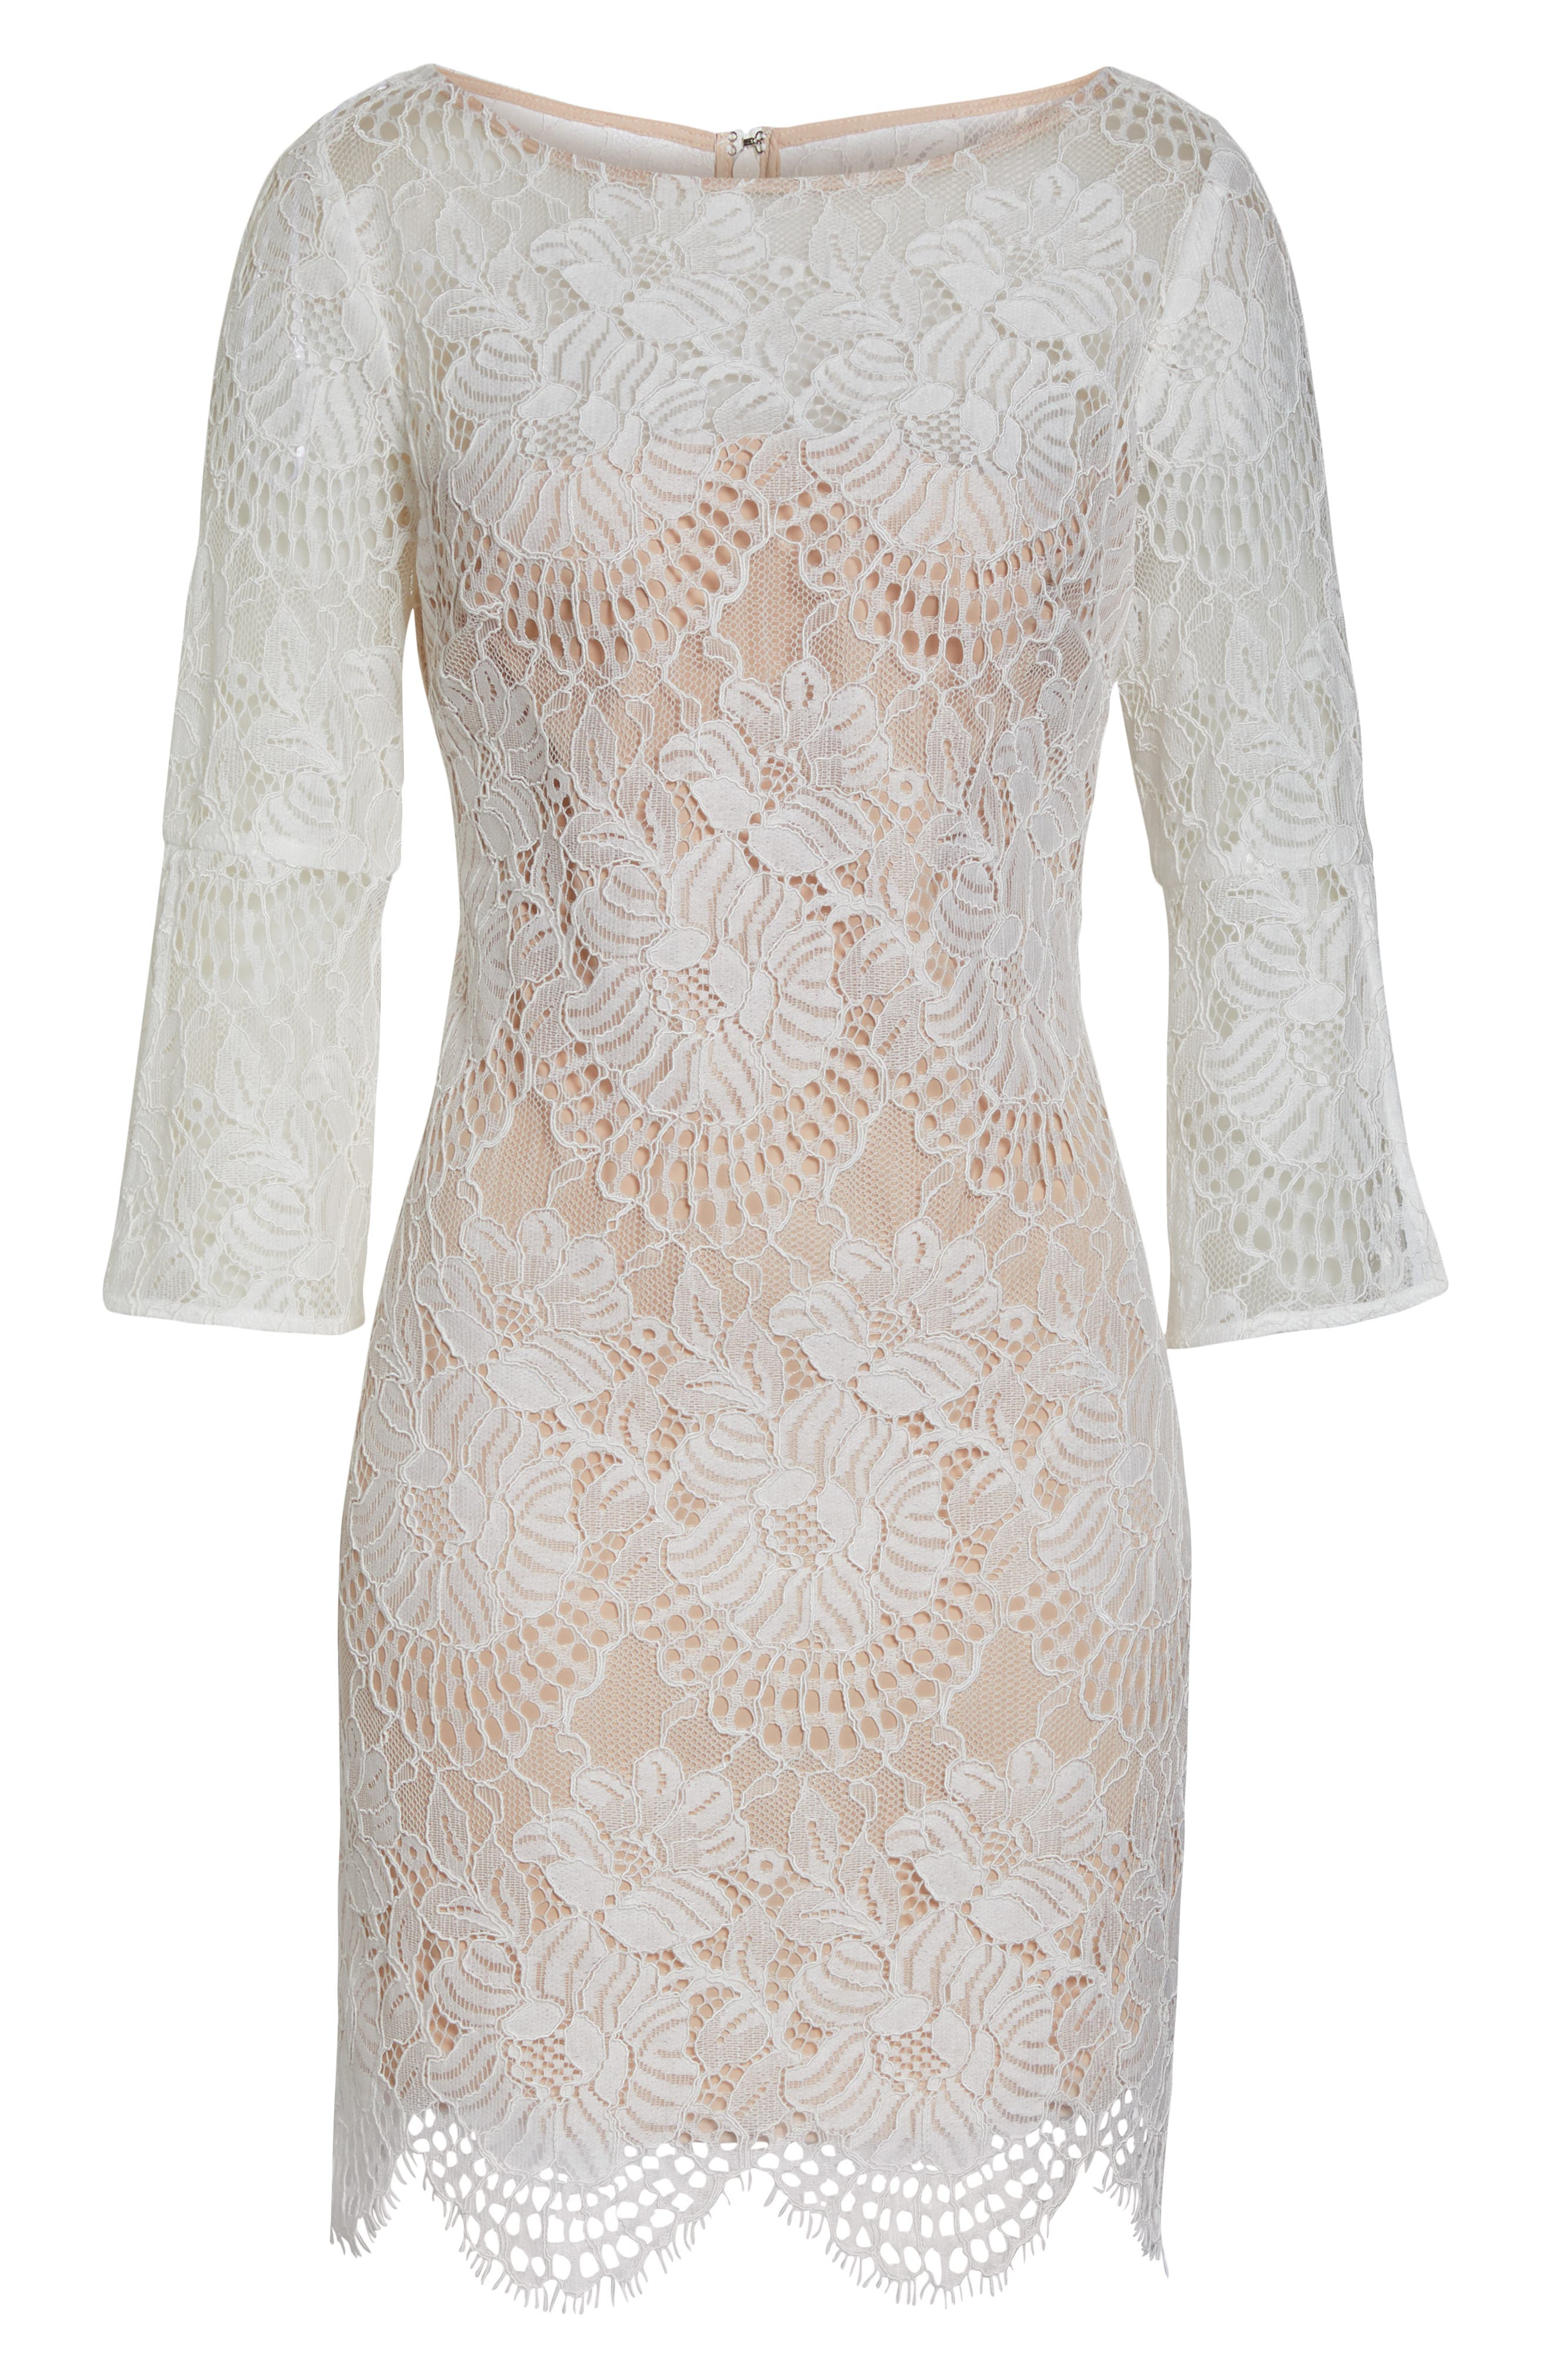 VINCE CAMUTO,                             Lace Shift Dress,                             Alternate thumbnail 7, color,                             IVORY